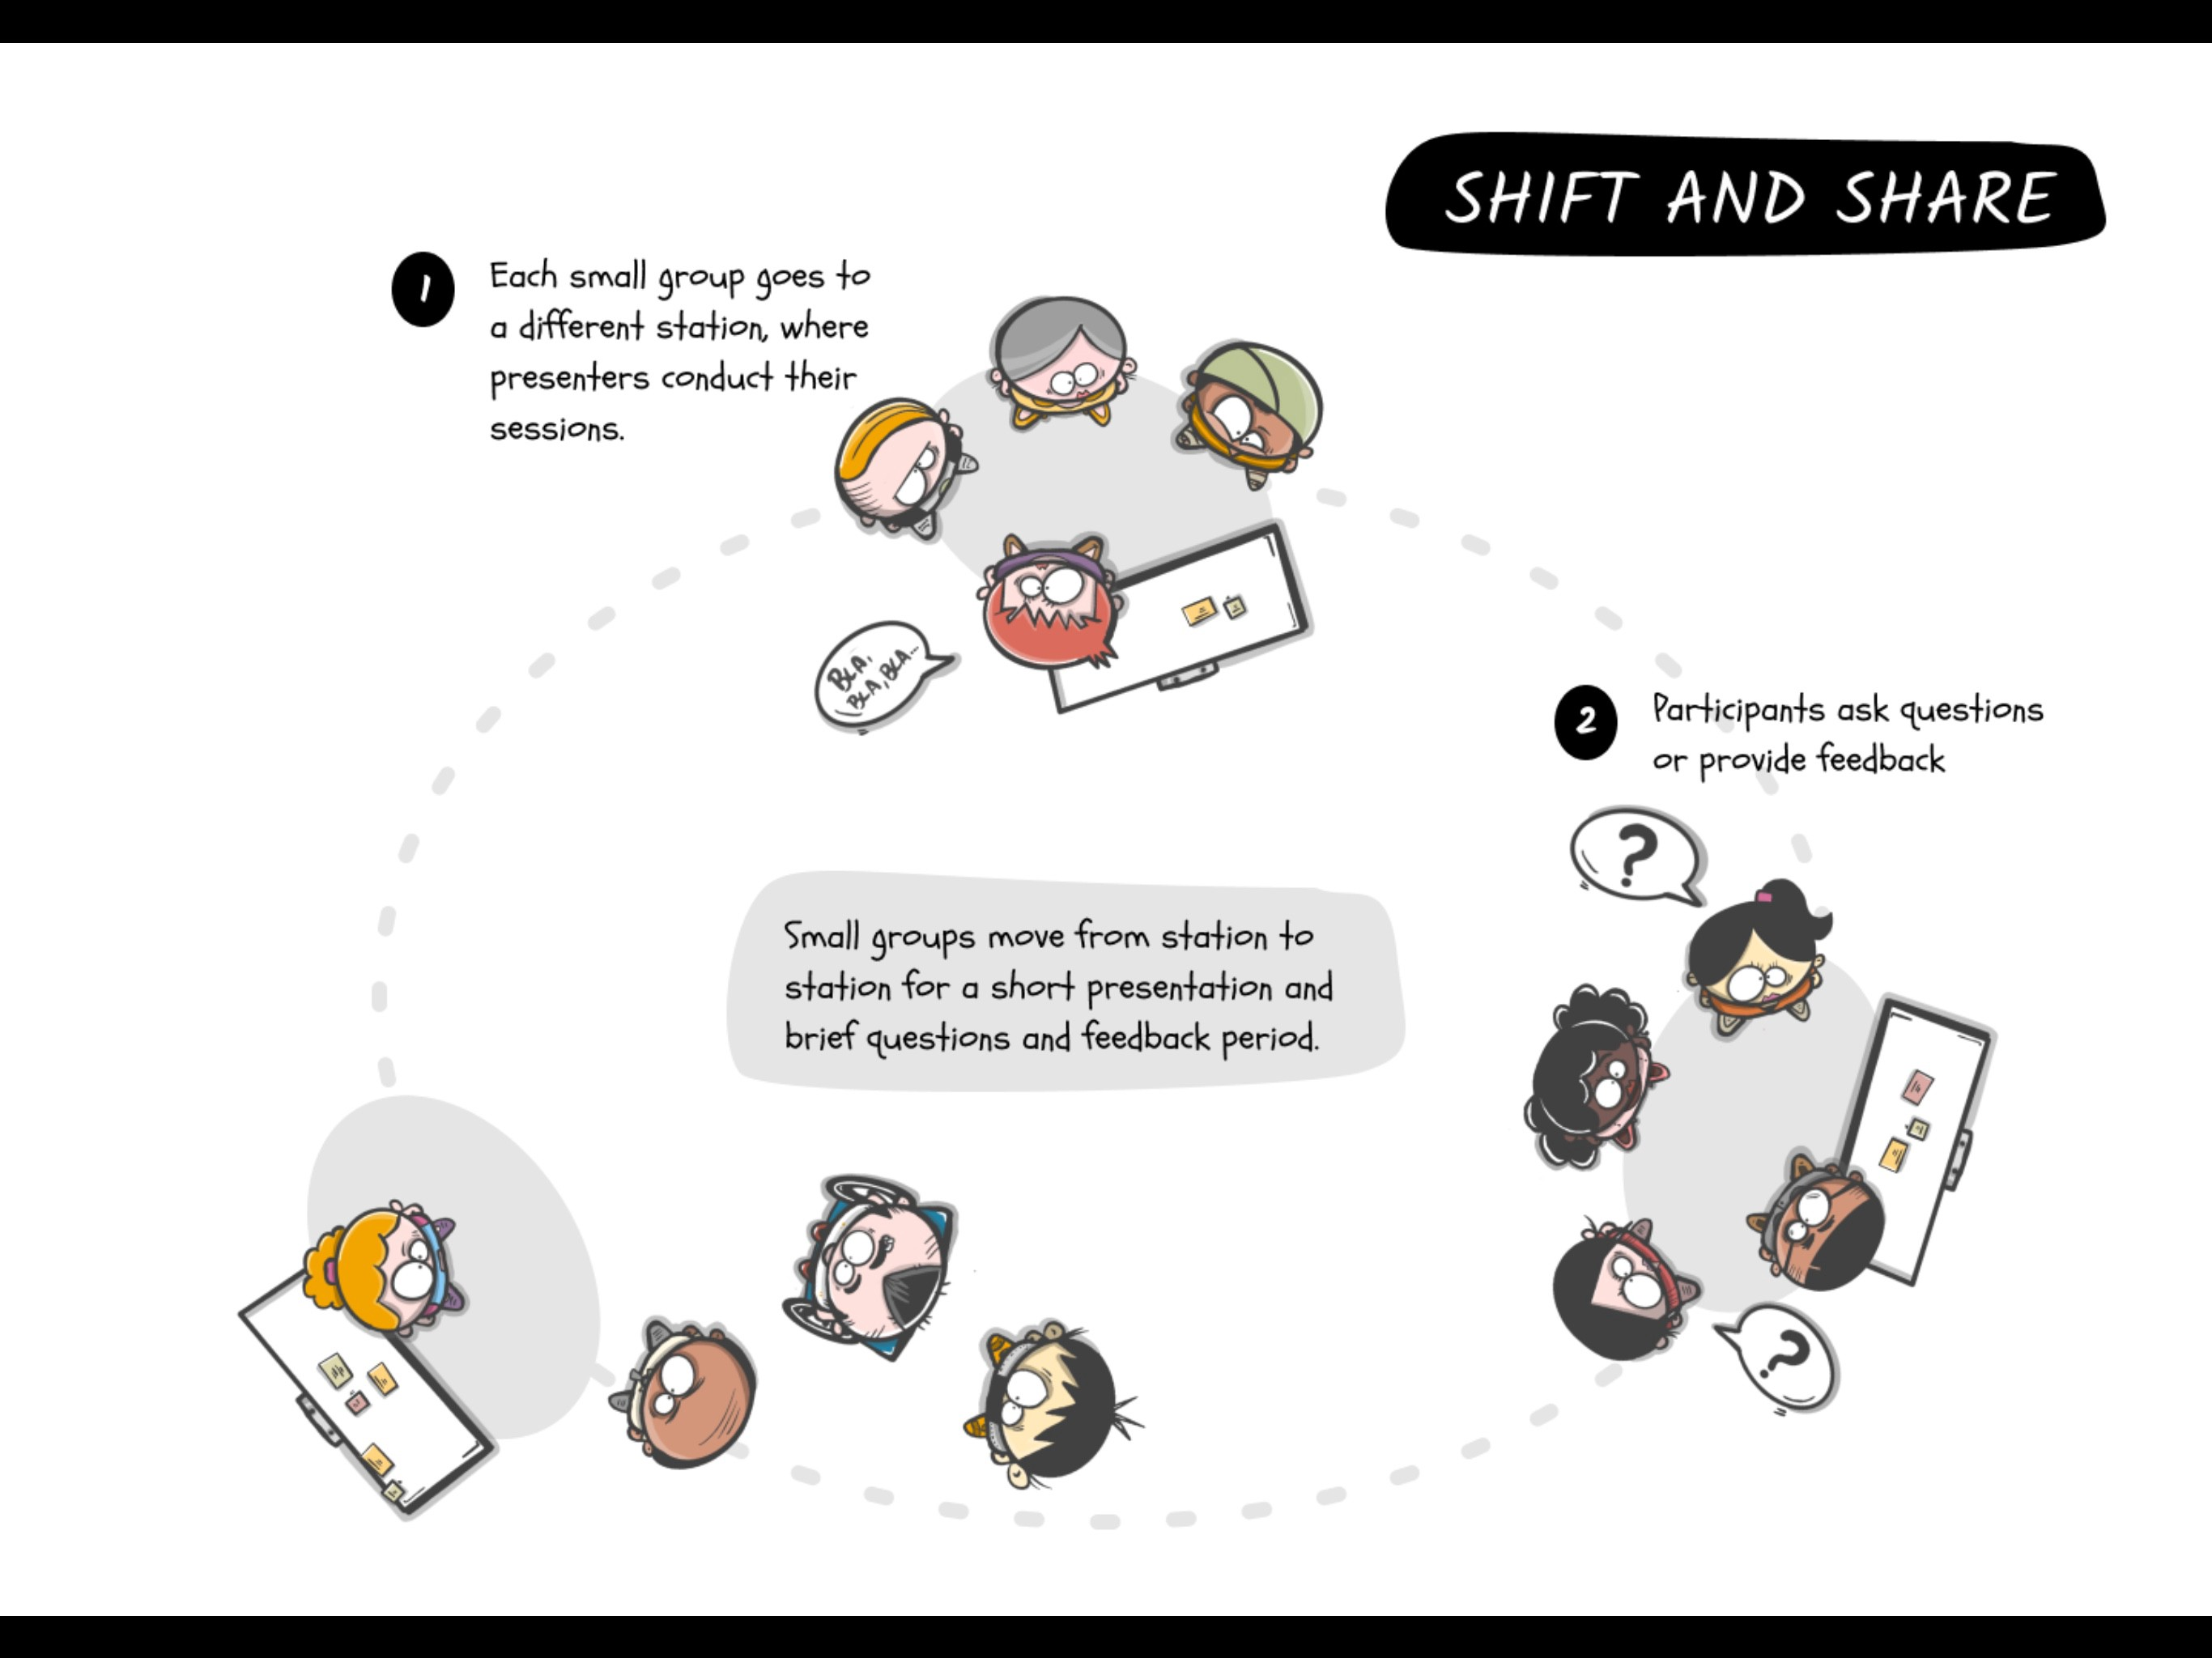 Shift & Share by Joao Reis